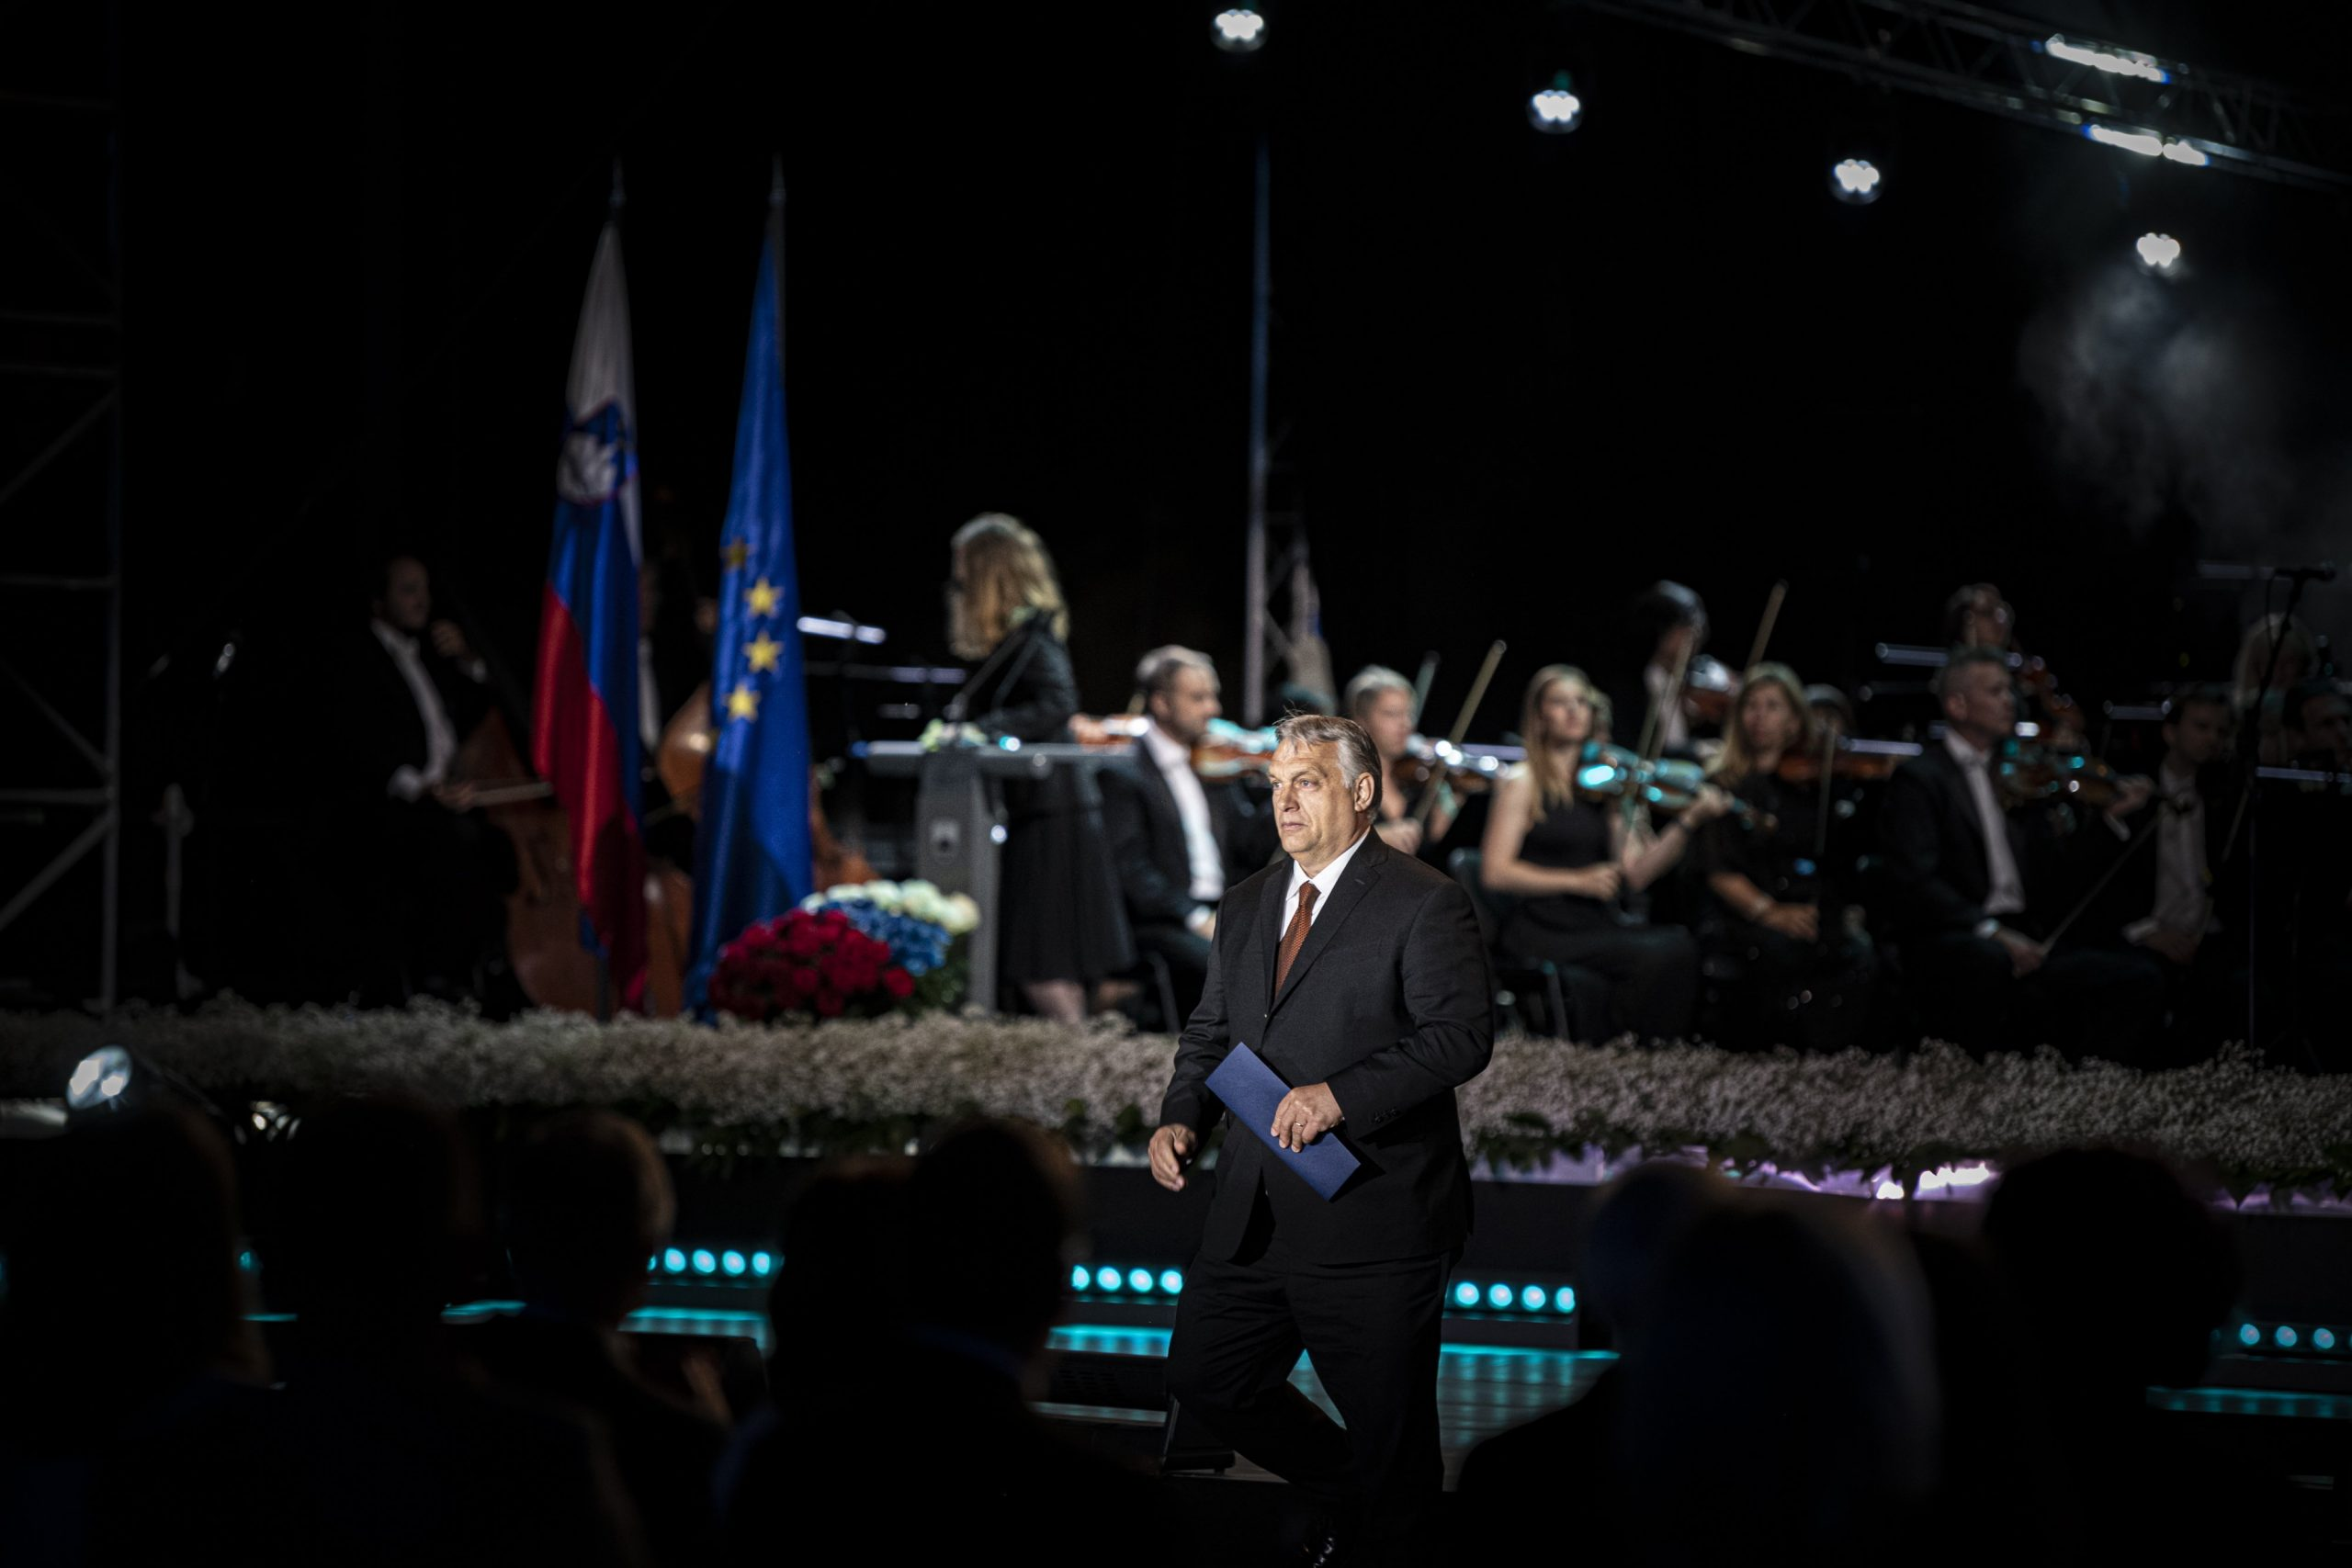 PM Orbán: Hungarians See Slovenians as 'Friends and Christian Brothers'